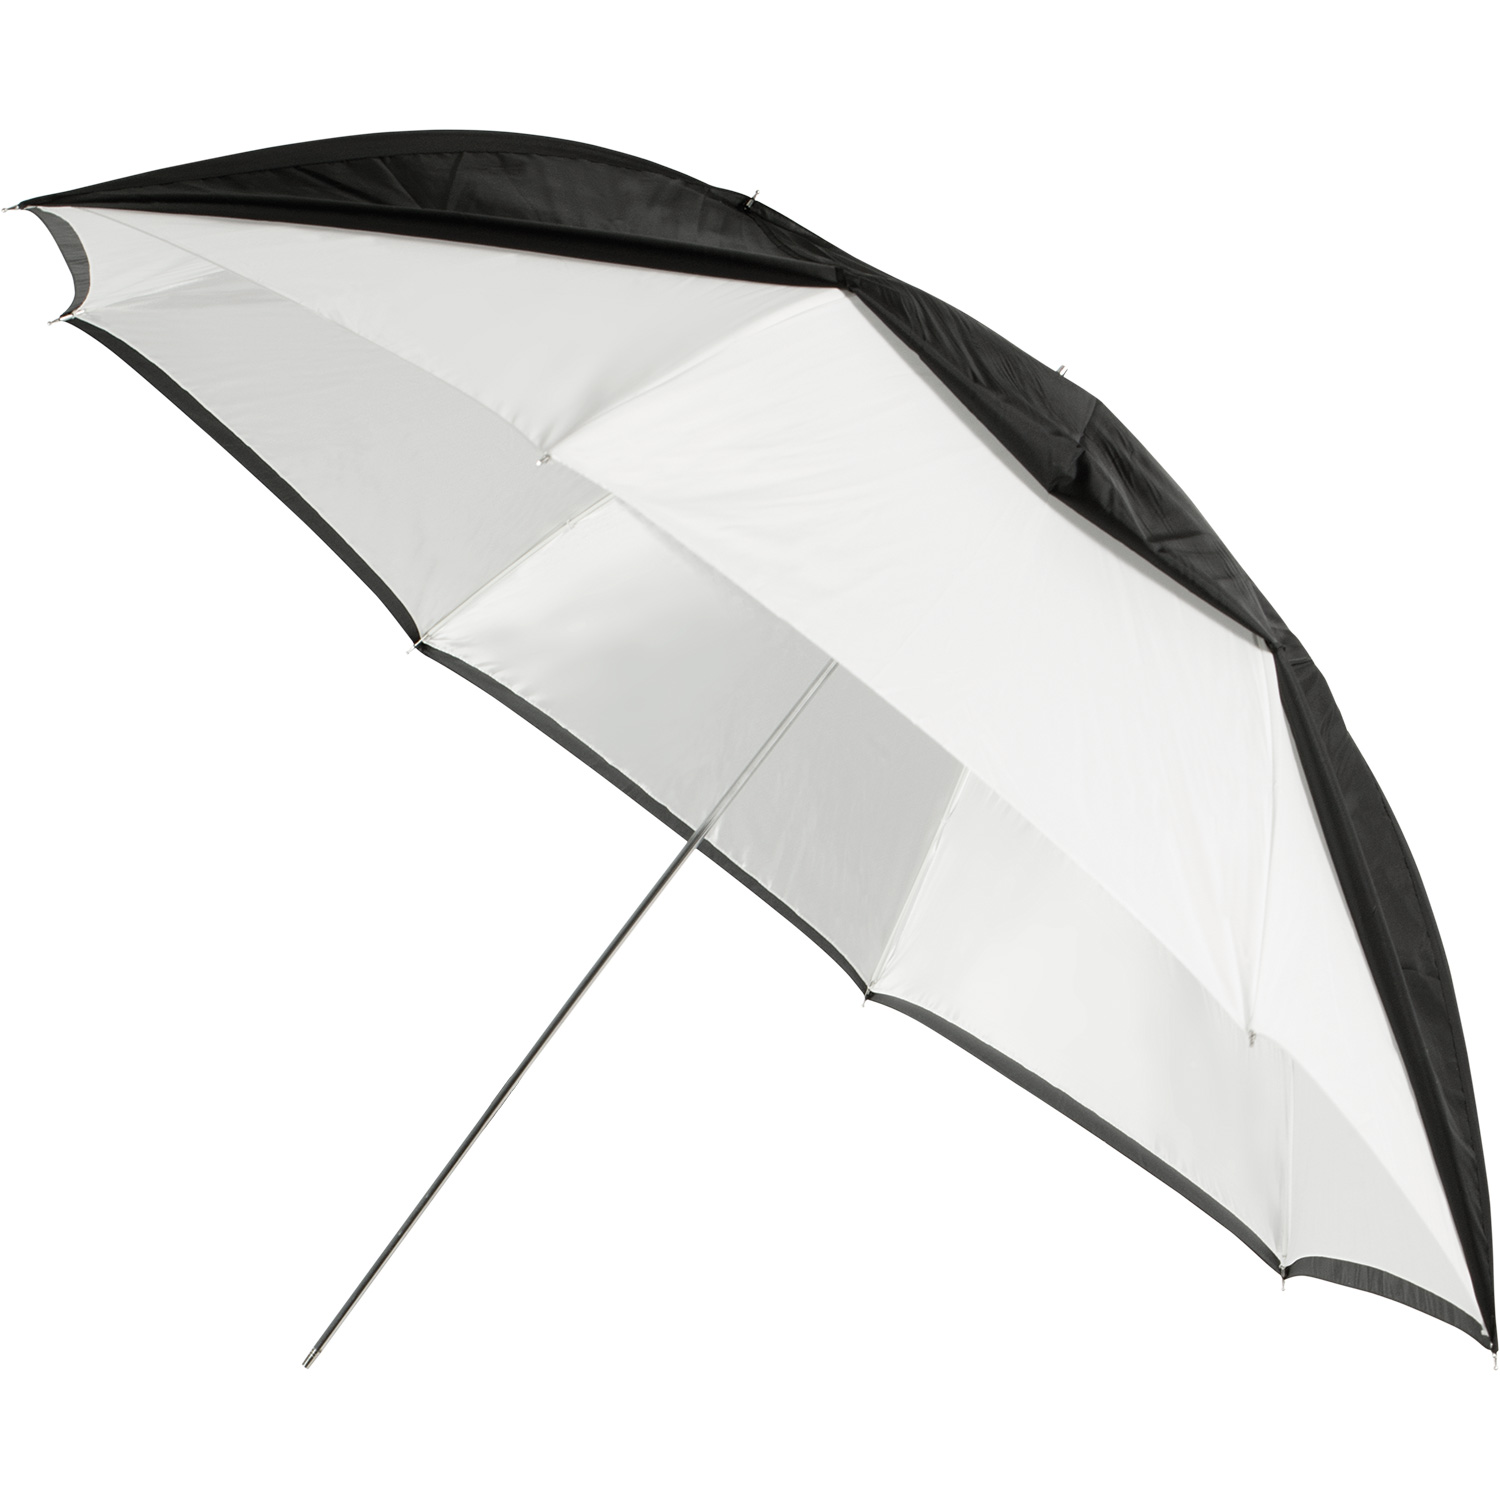 Convertible Umbrella - Optical White Satin with Removable Black Cover (60-in.)